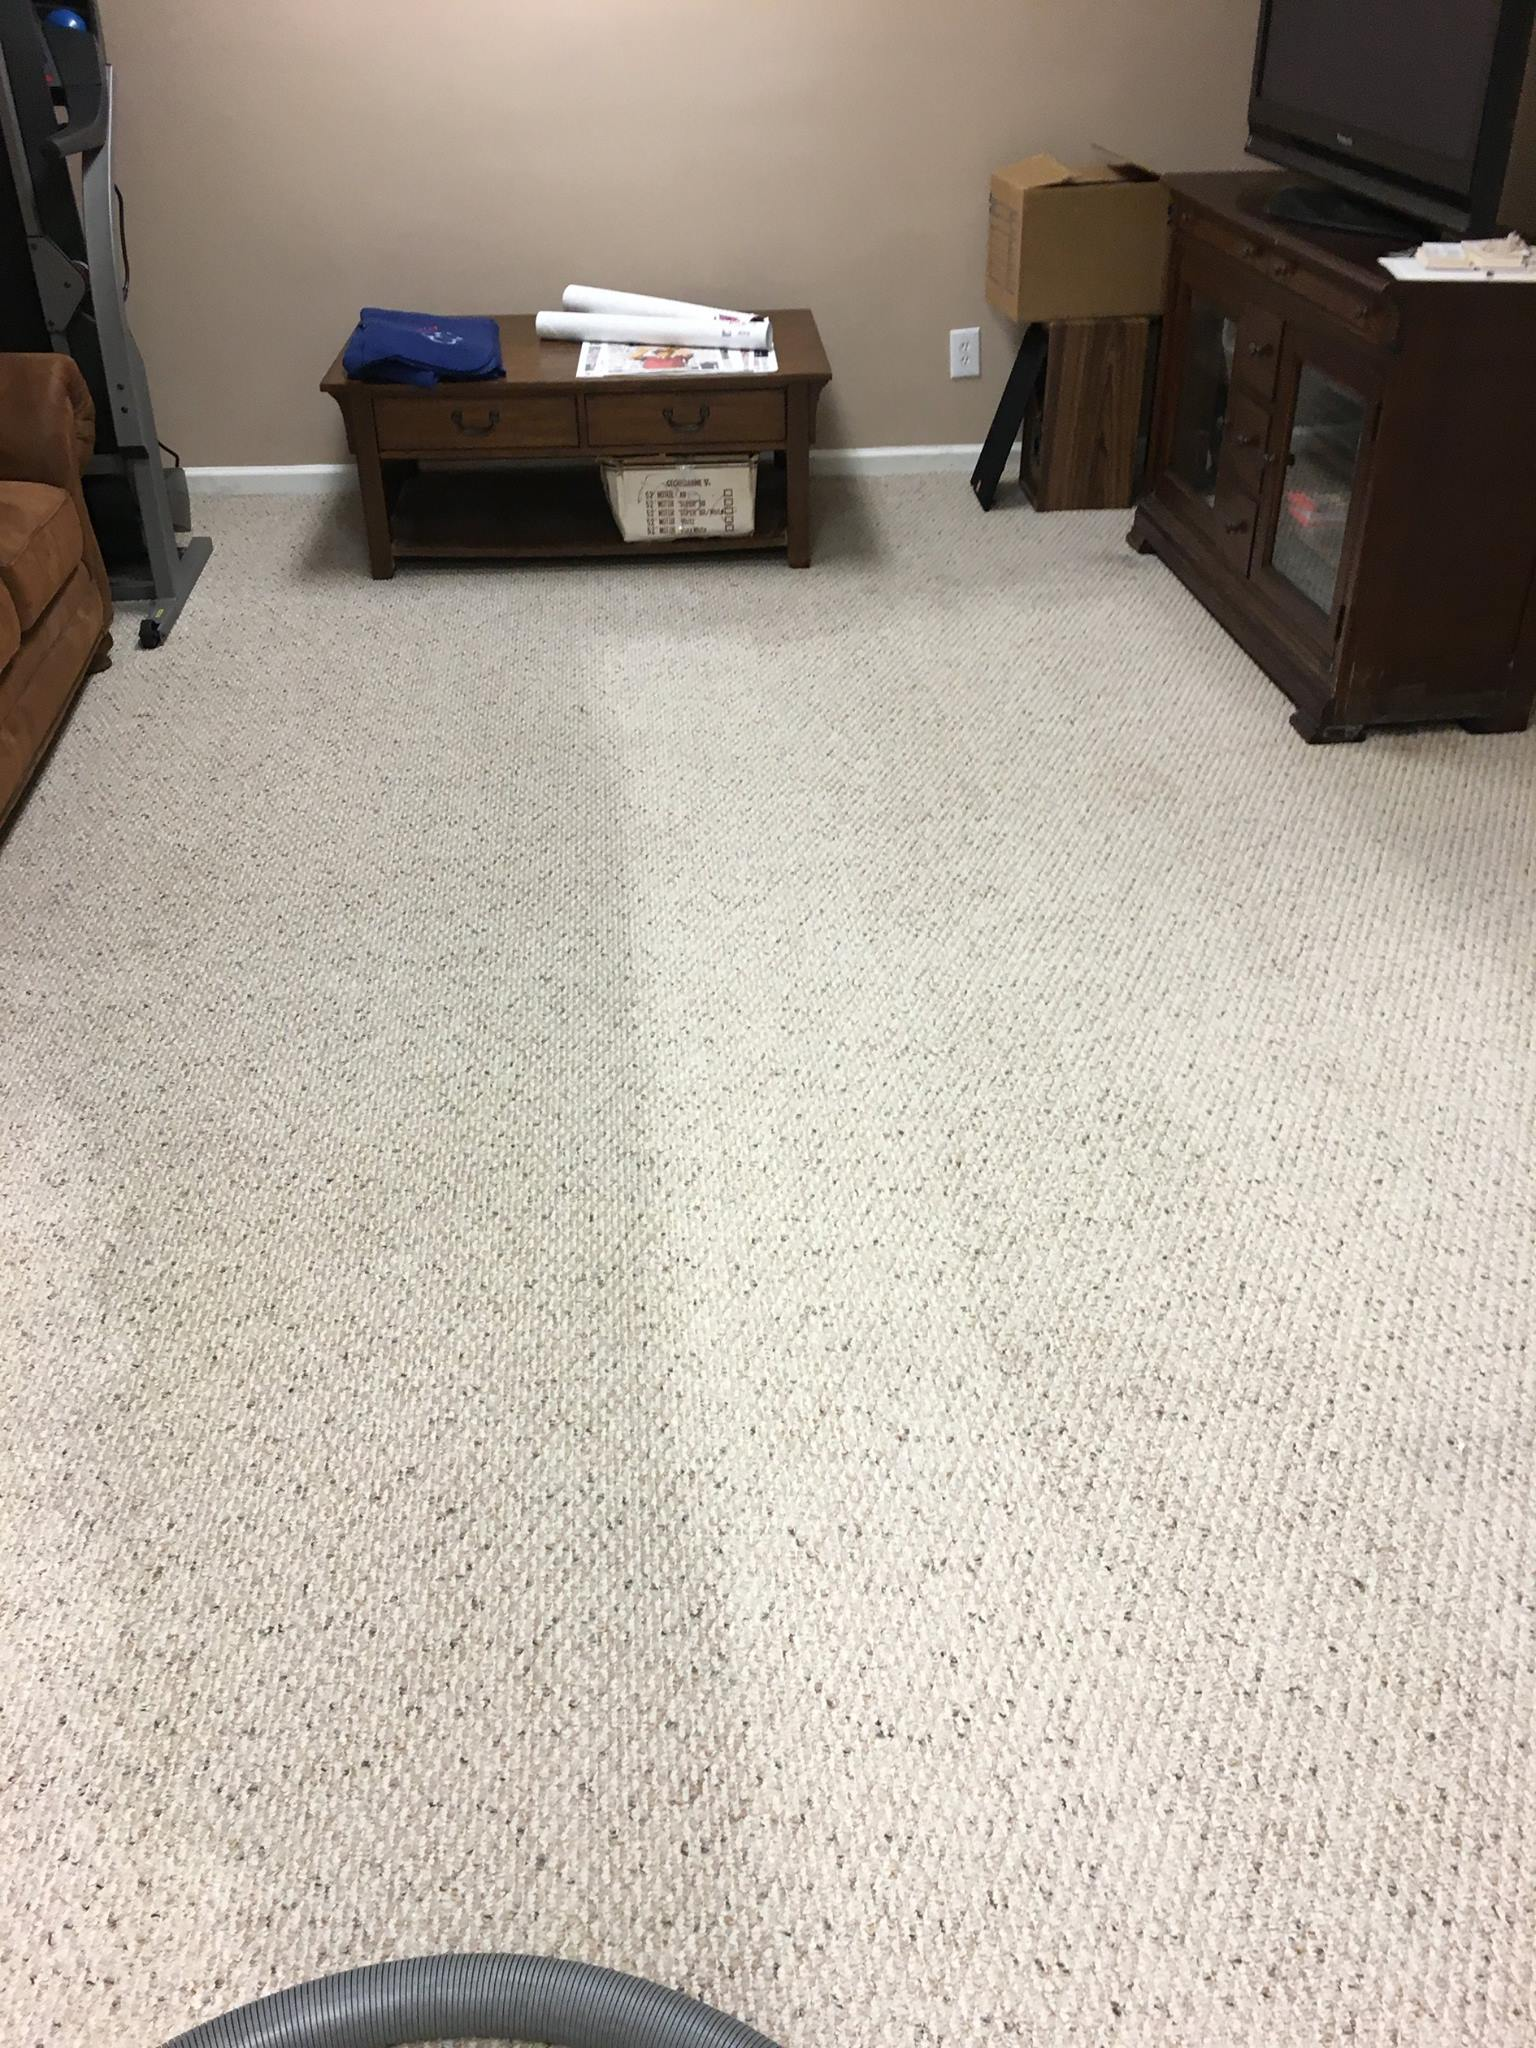 Pro Carpet Cleaner Tips for Pet Deodorization - Carpet Services Unlimited - Sharpsville   NearSay